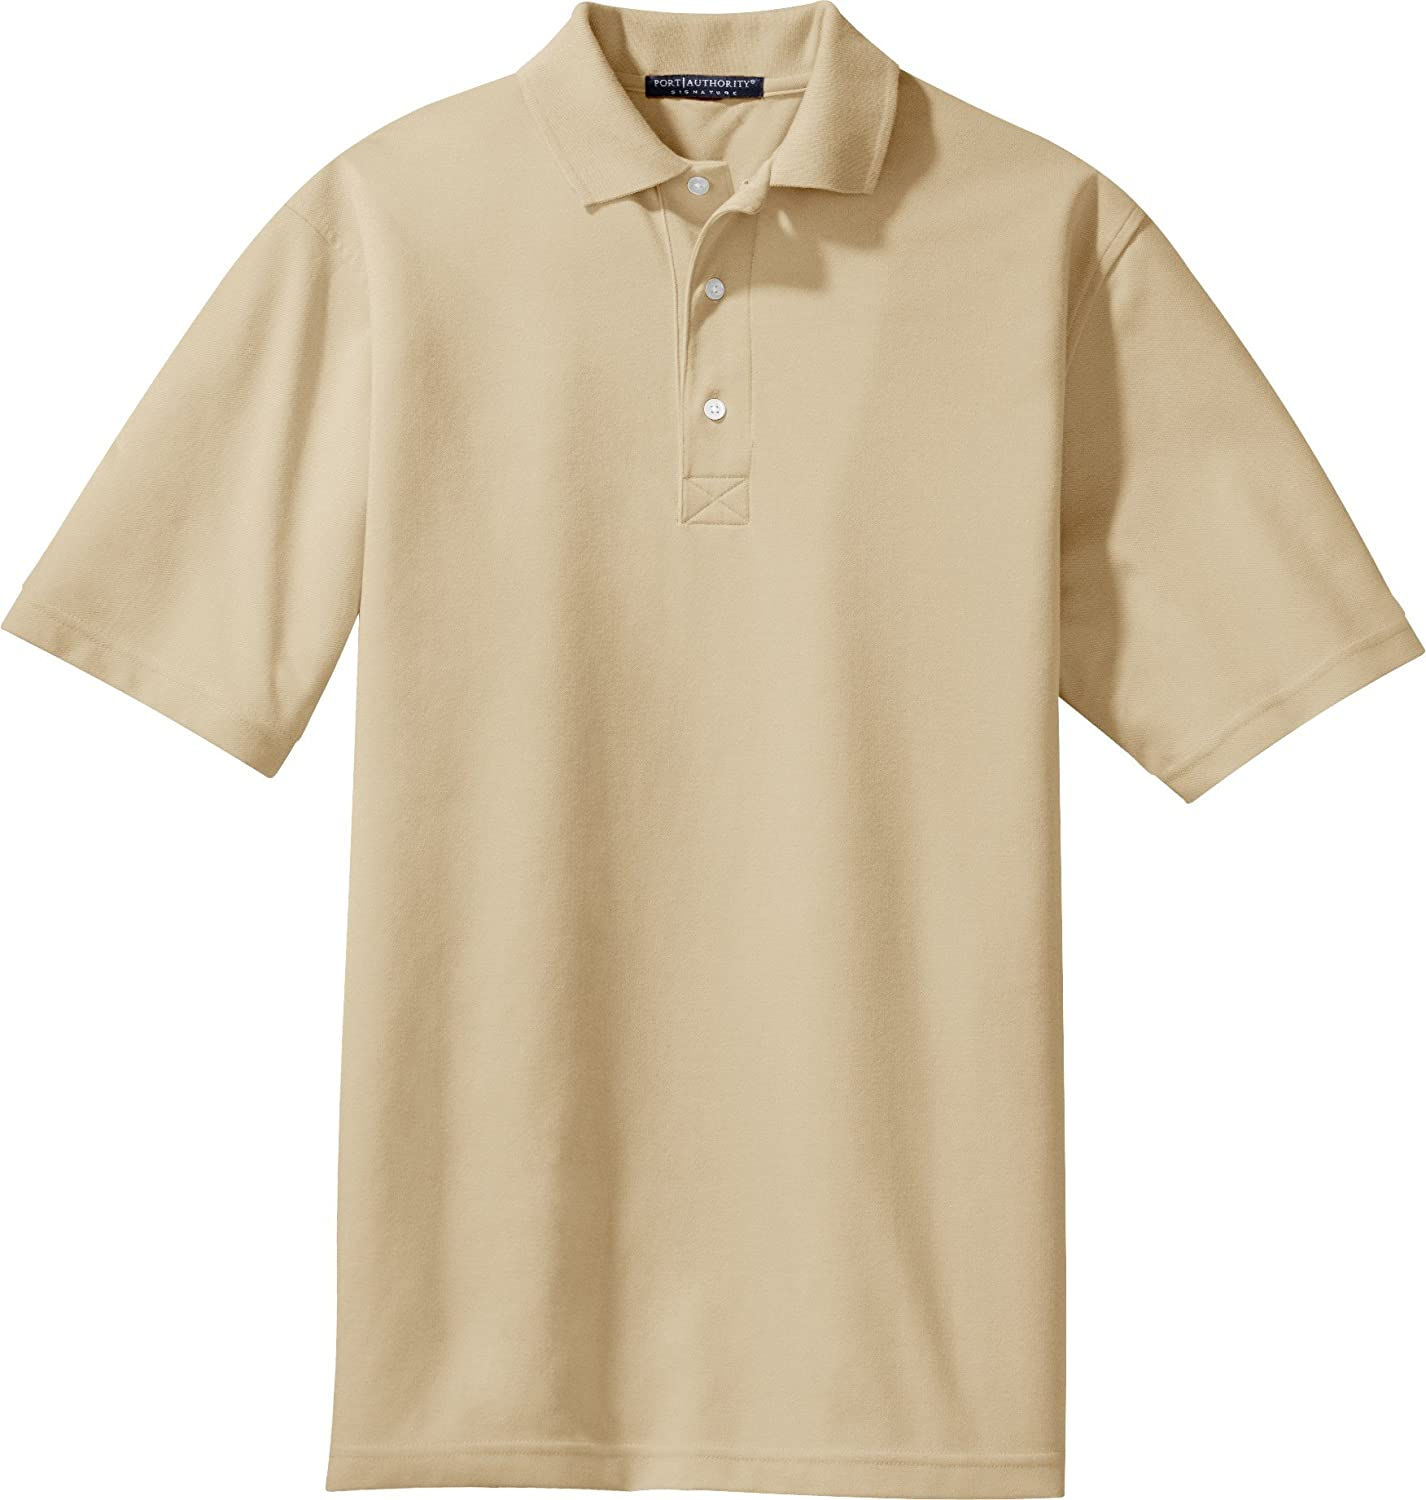 Stone Rapid Dry Polo Sport Shirt K455 Port Authority Signature X-Small